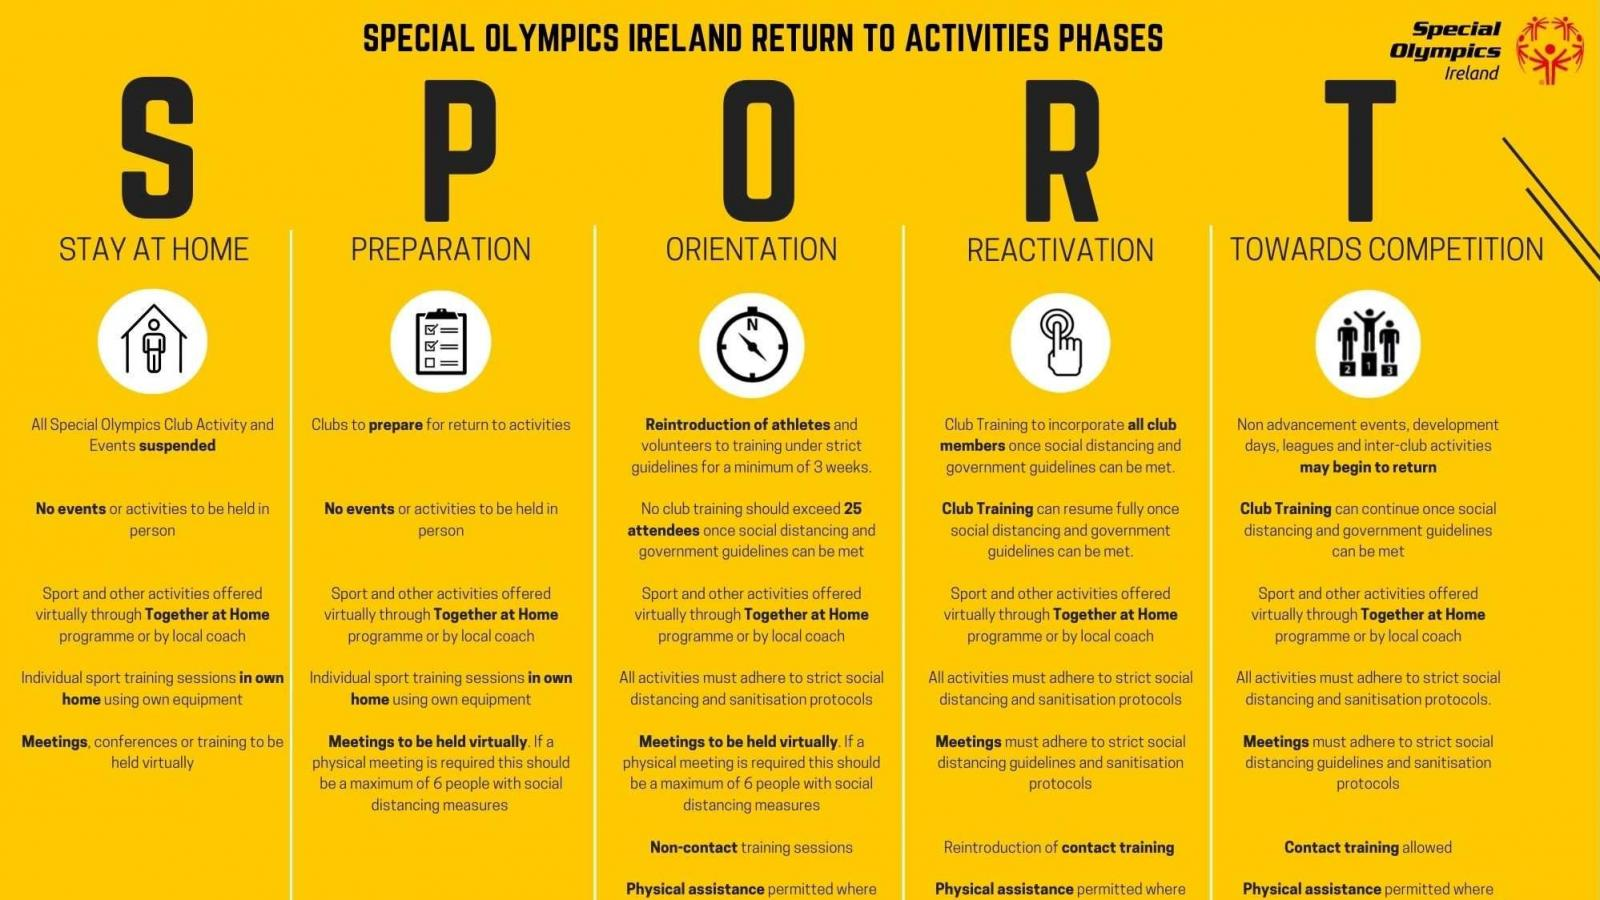 Return to Activities Phases